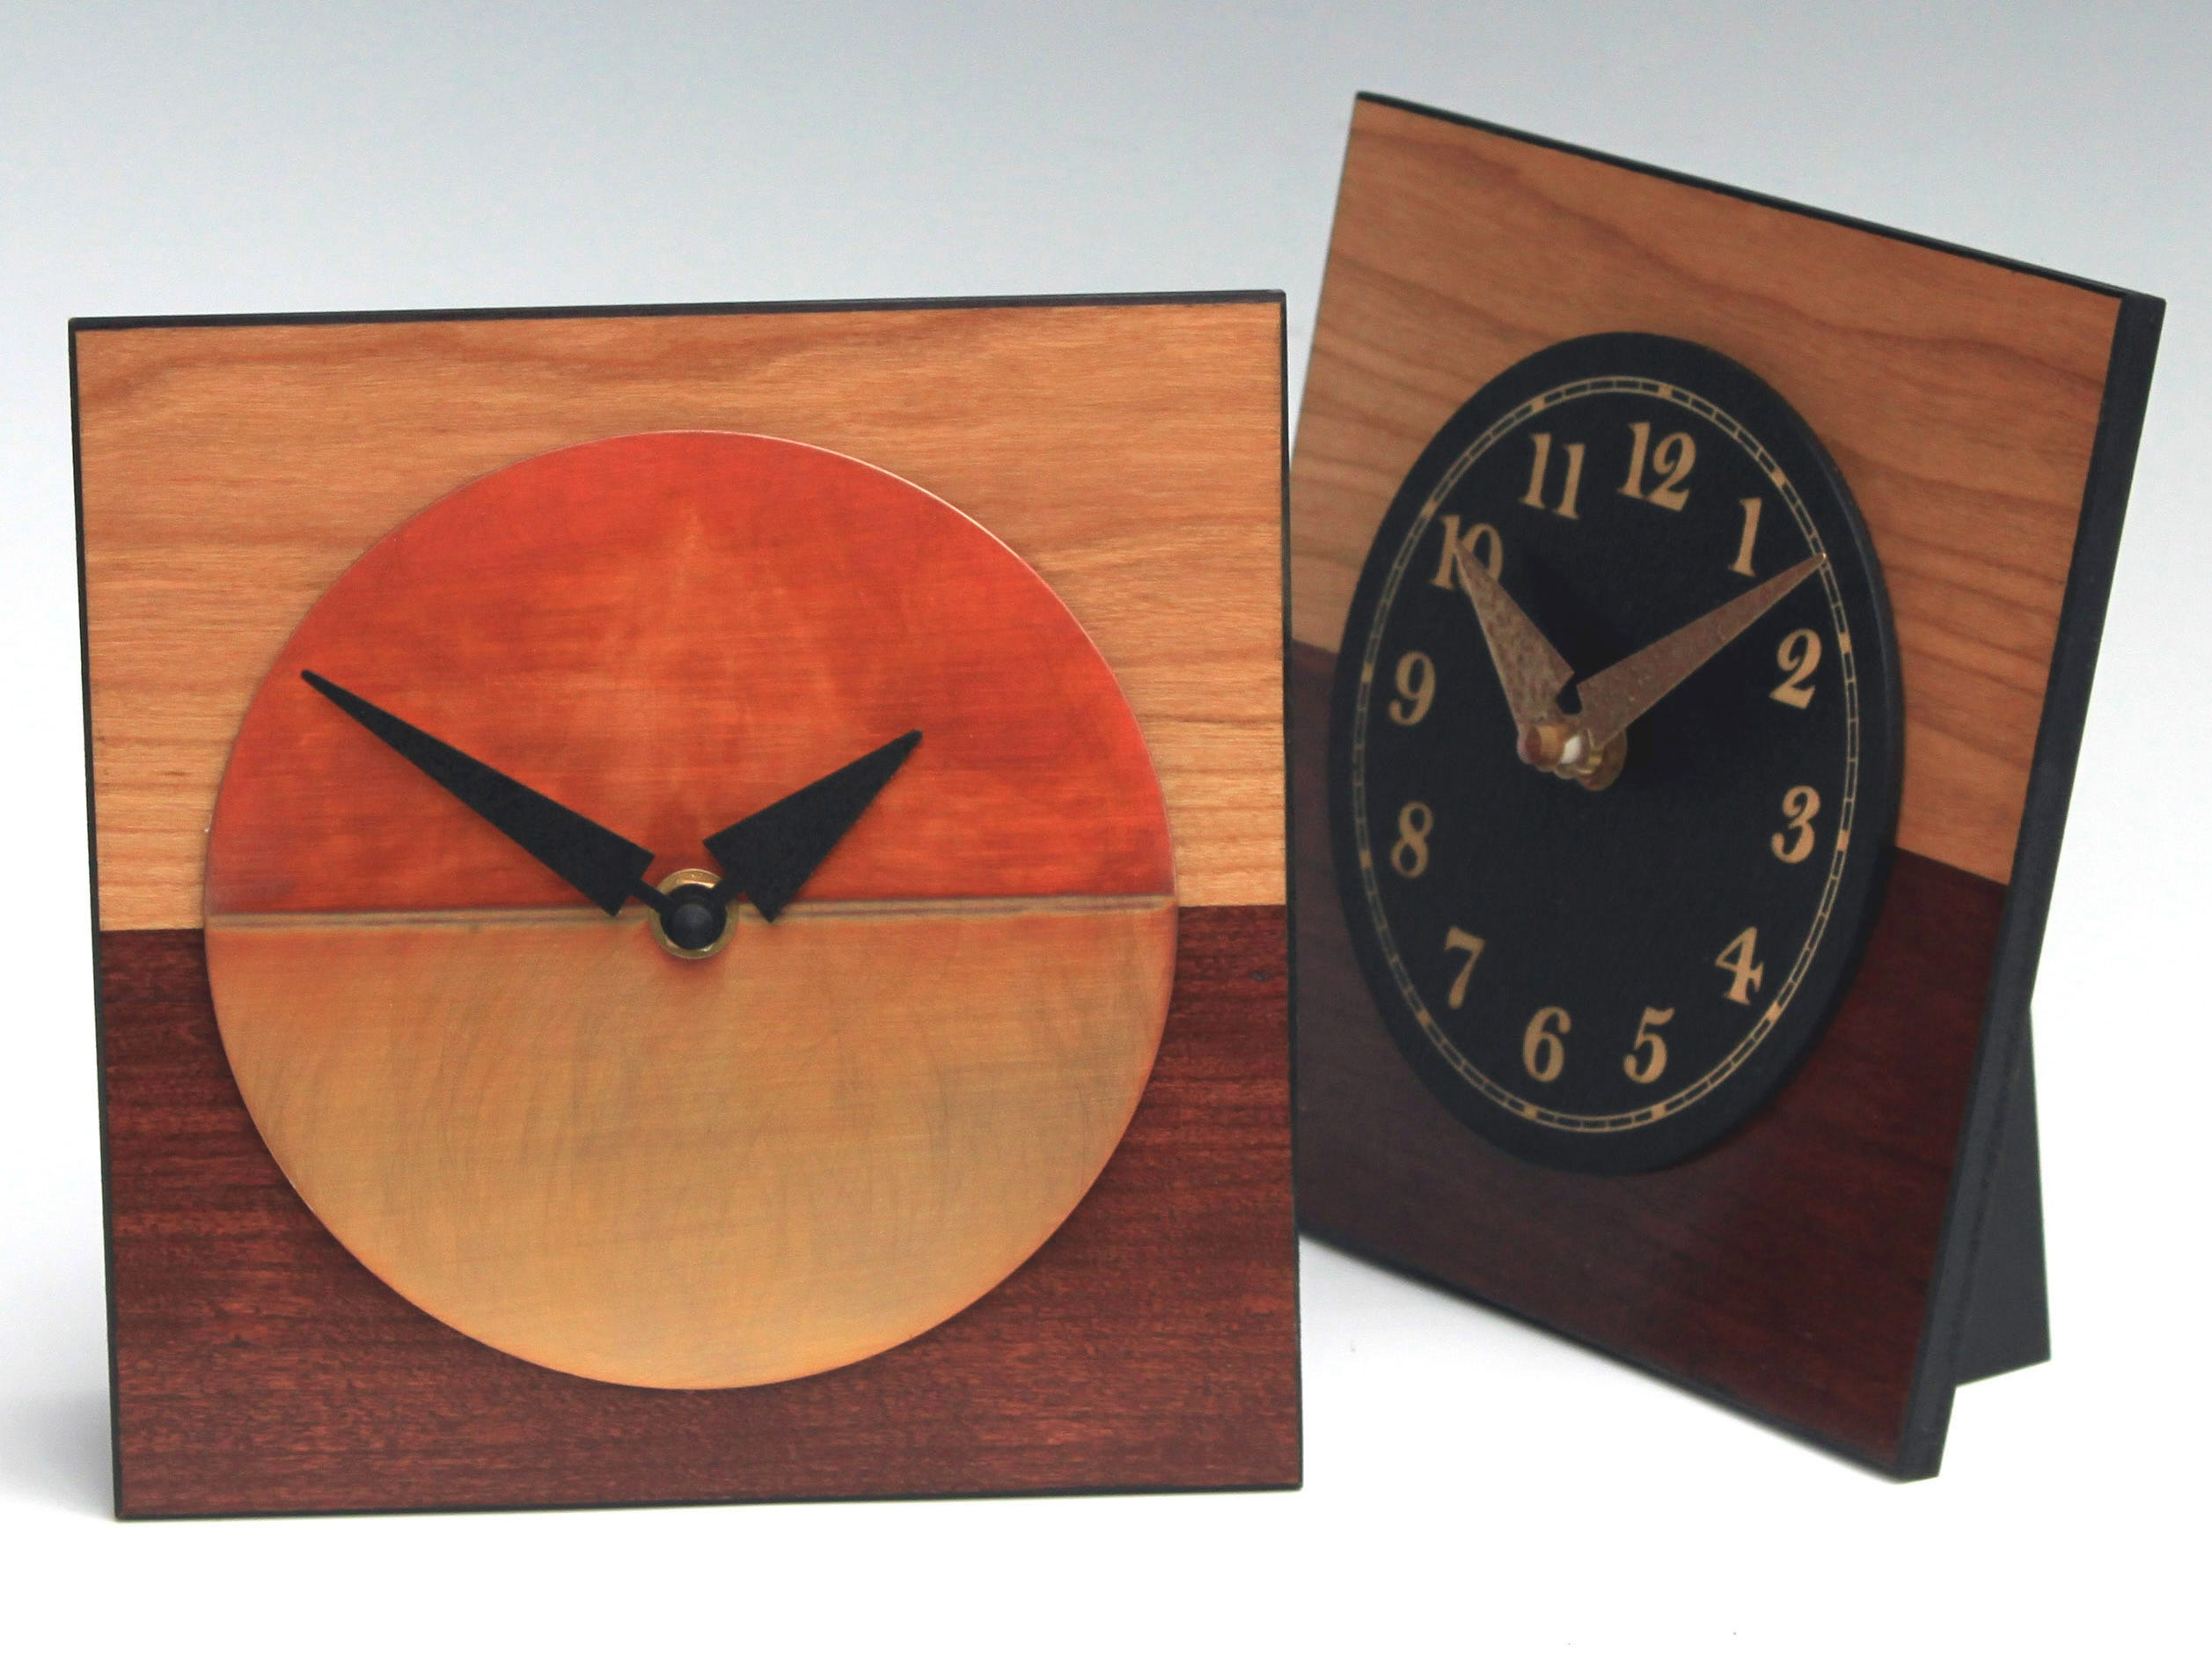 These two-tone desktop clocks ($75) from leonietime.com are cherry veneer with a copper face or painted, laser-etched wooden face.